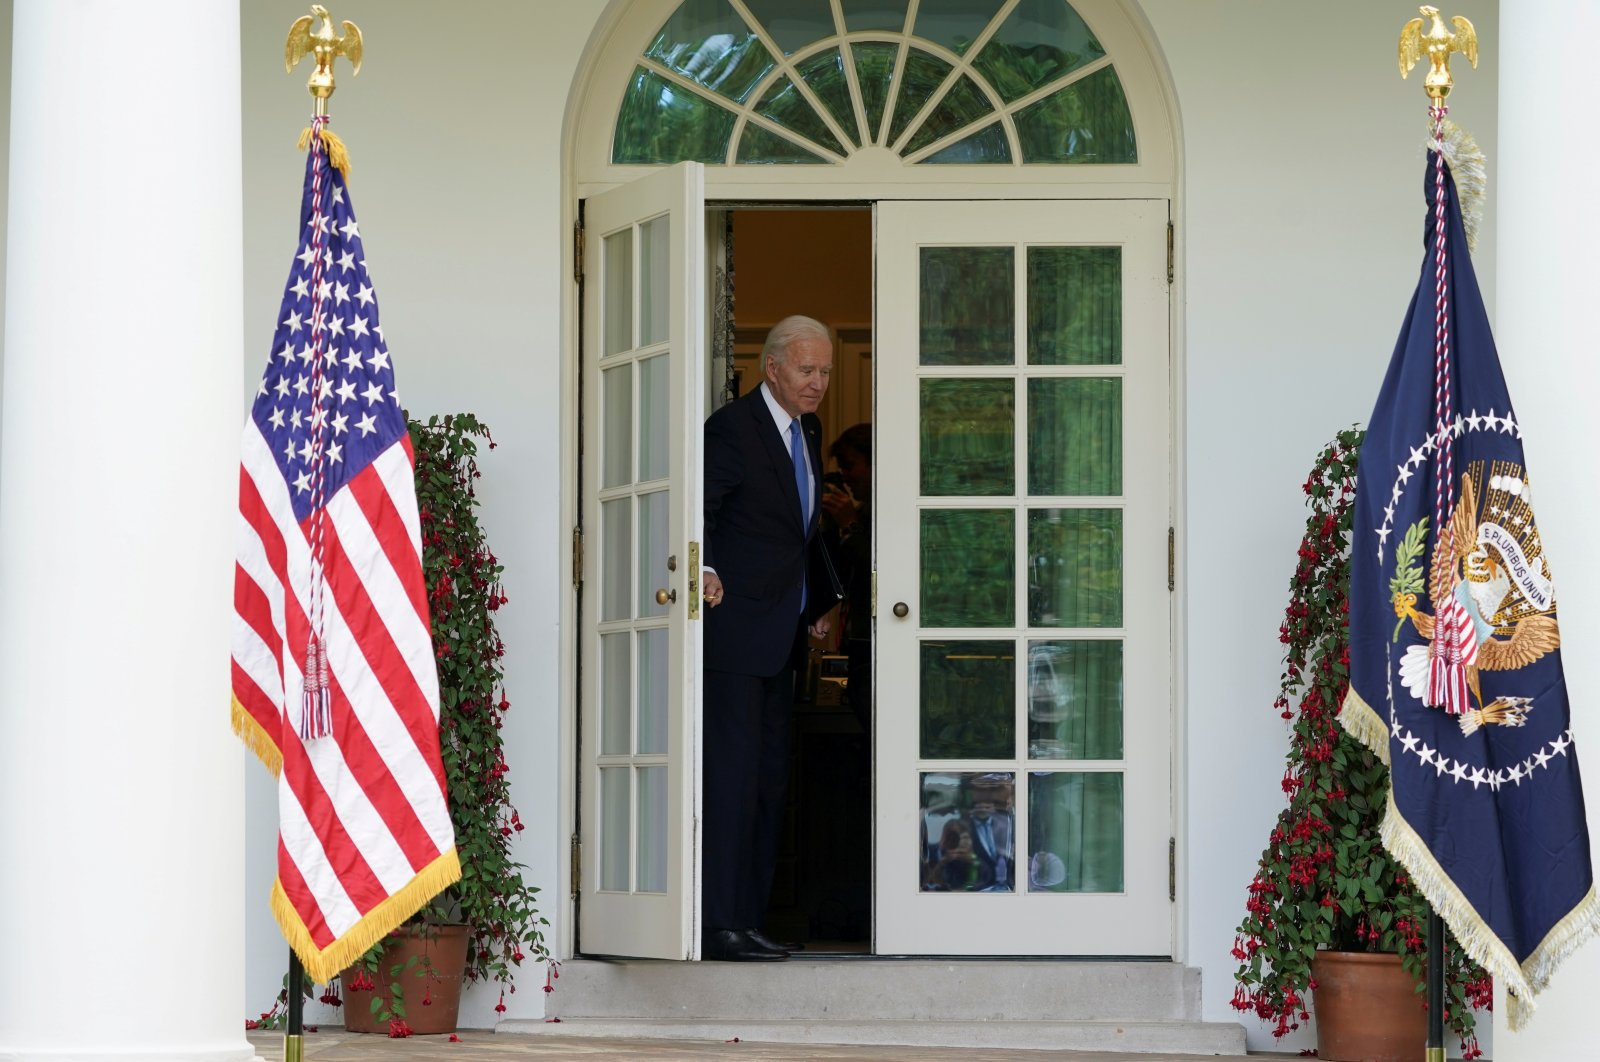 U.S. President Joe Biden leaves after speaking about the COVID-19 response and the vaccination program from the Rose Garden of the White House in Washington, U.S., May 13, 2021. (Reuters Photo)